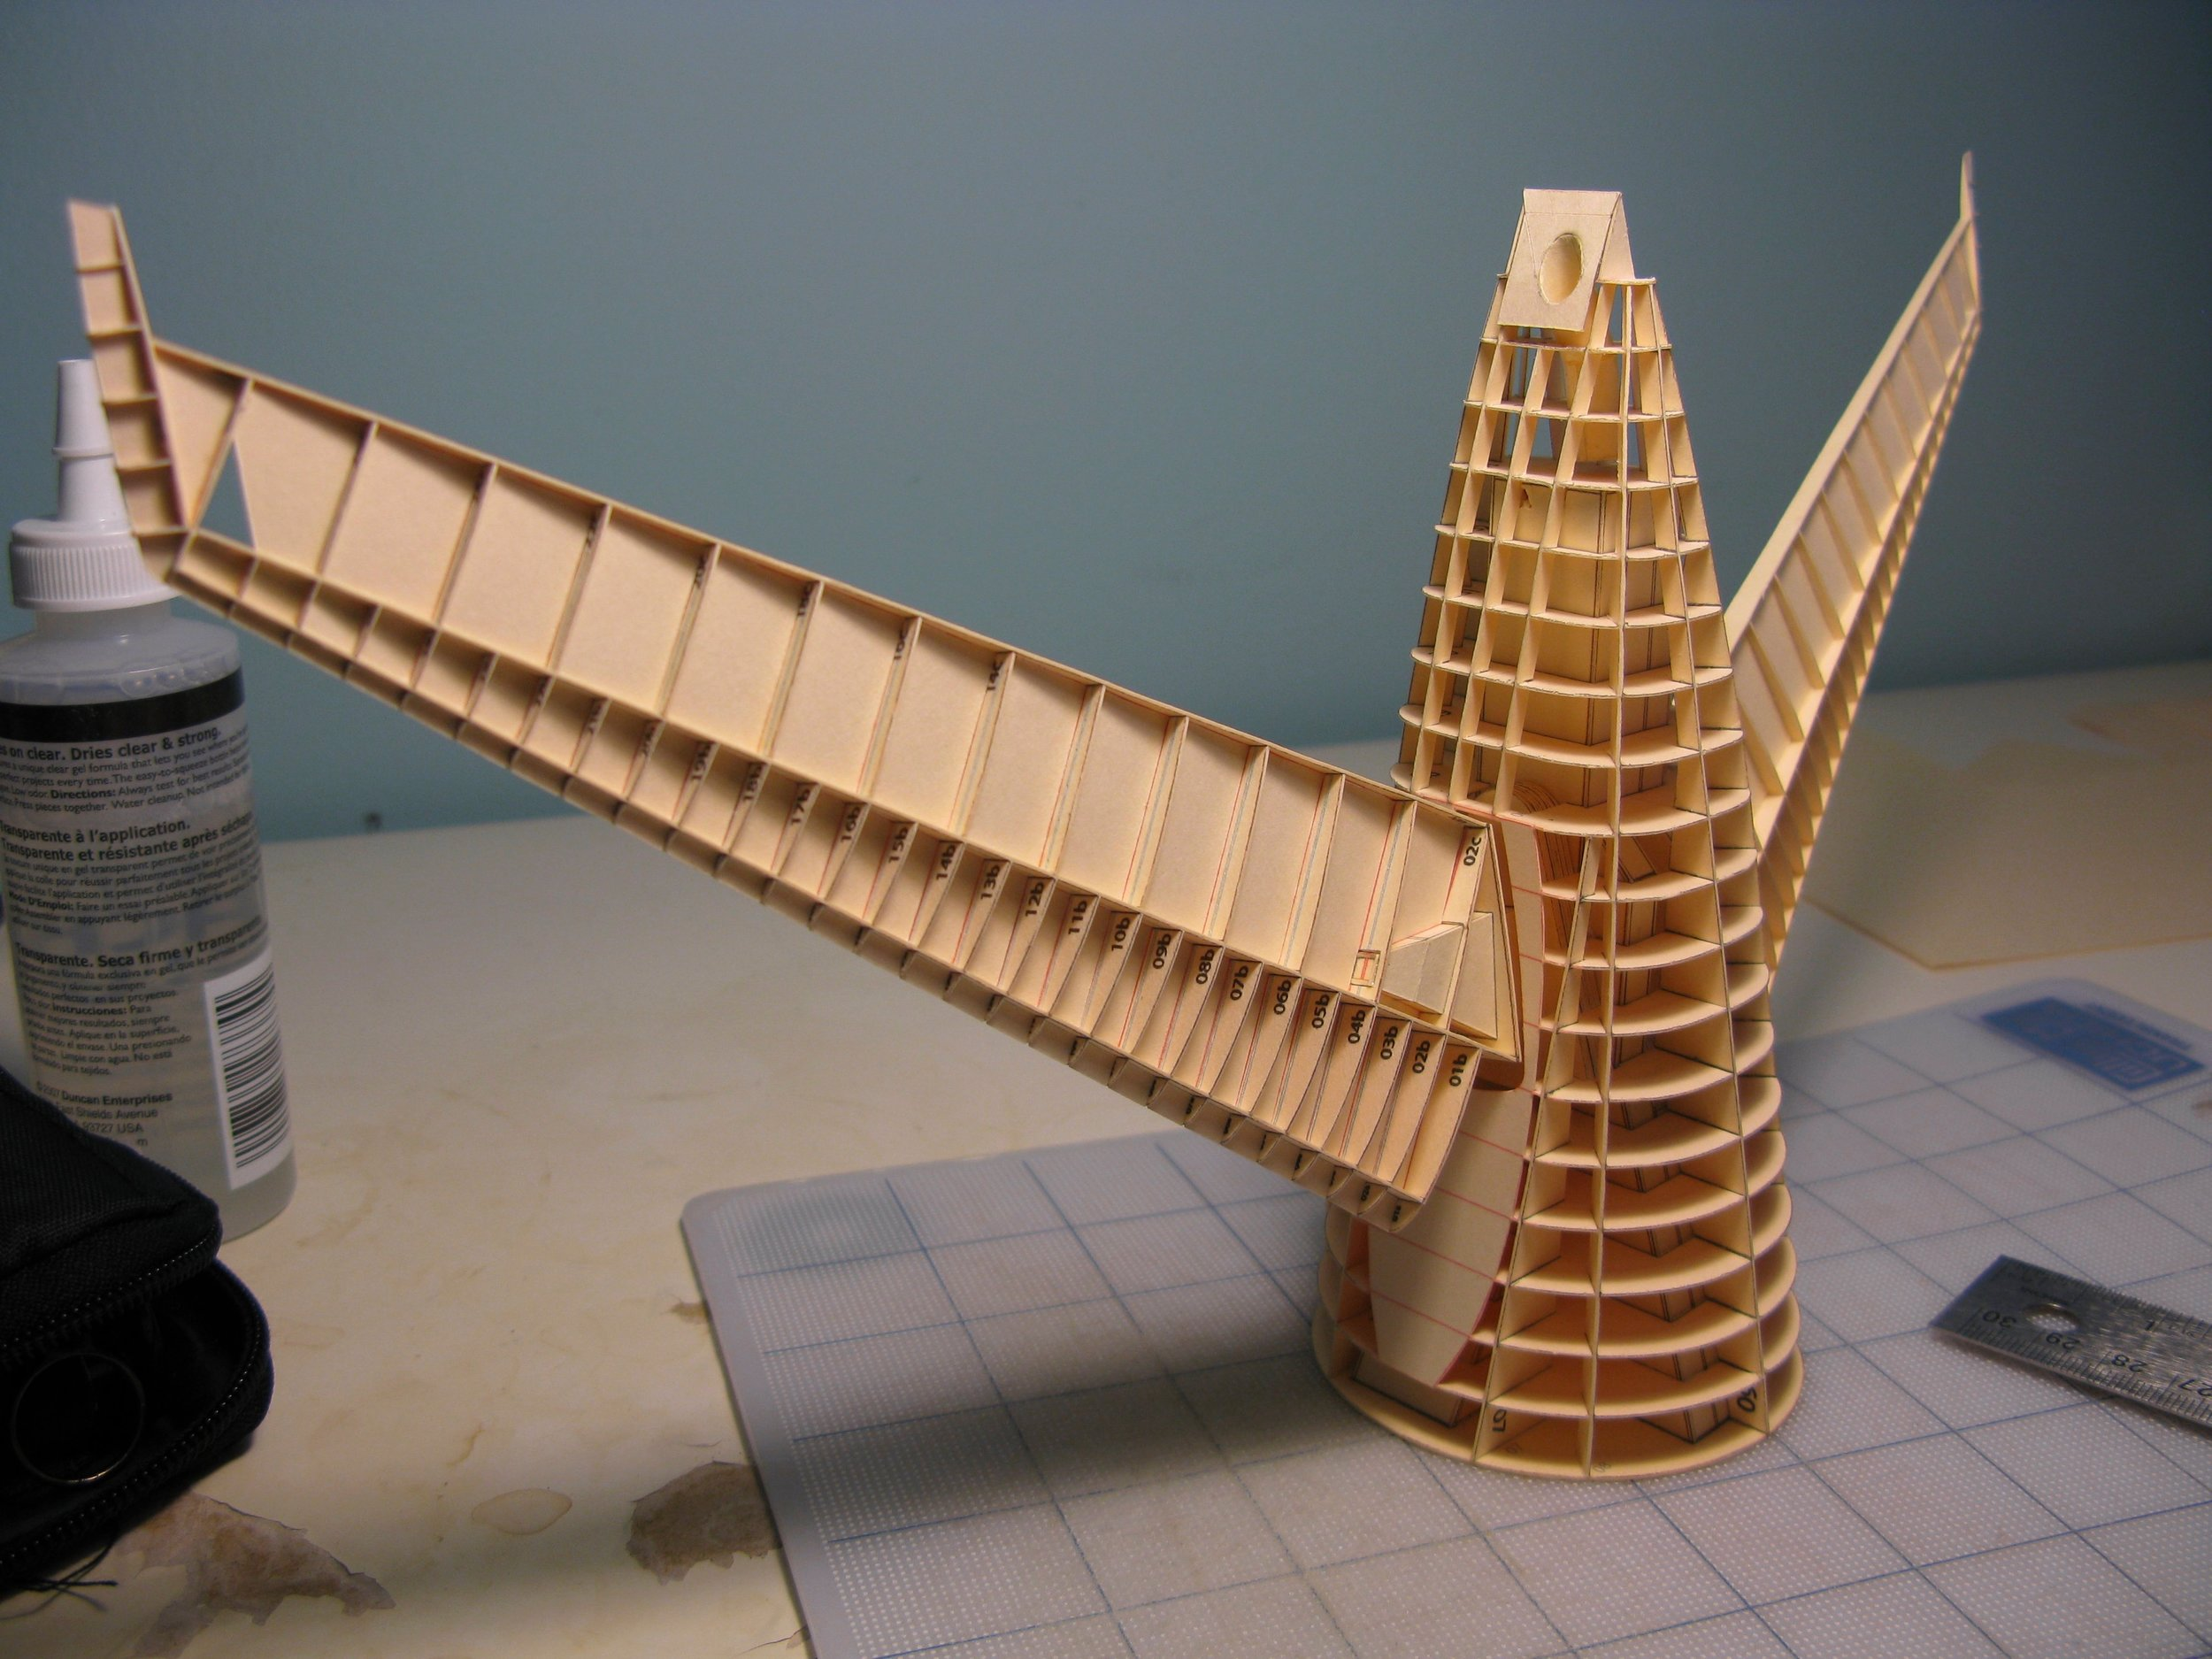 The tail section of the fuselage, along with the horizontal stabilizers